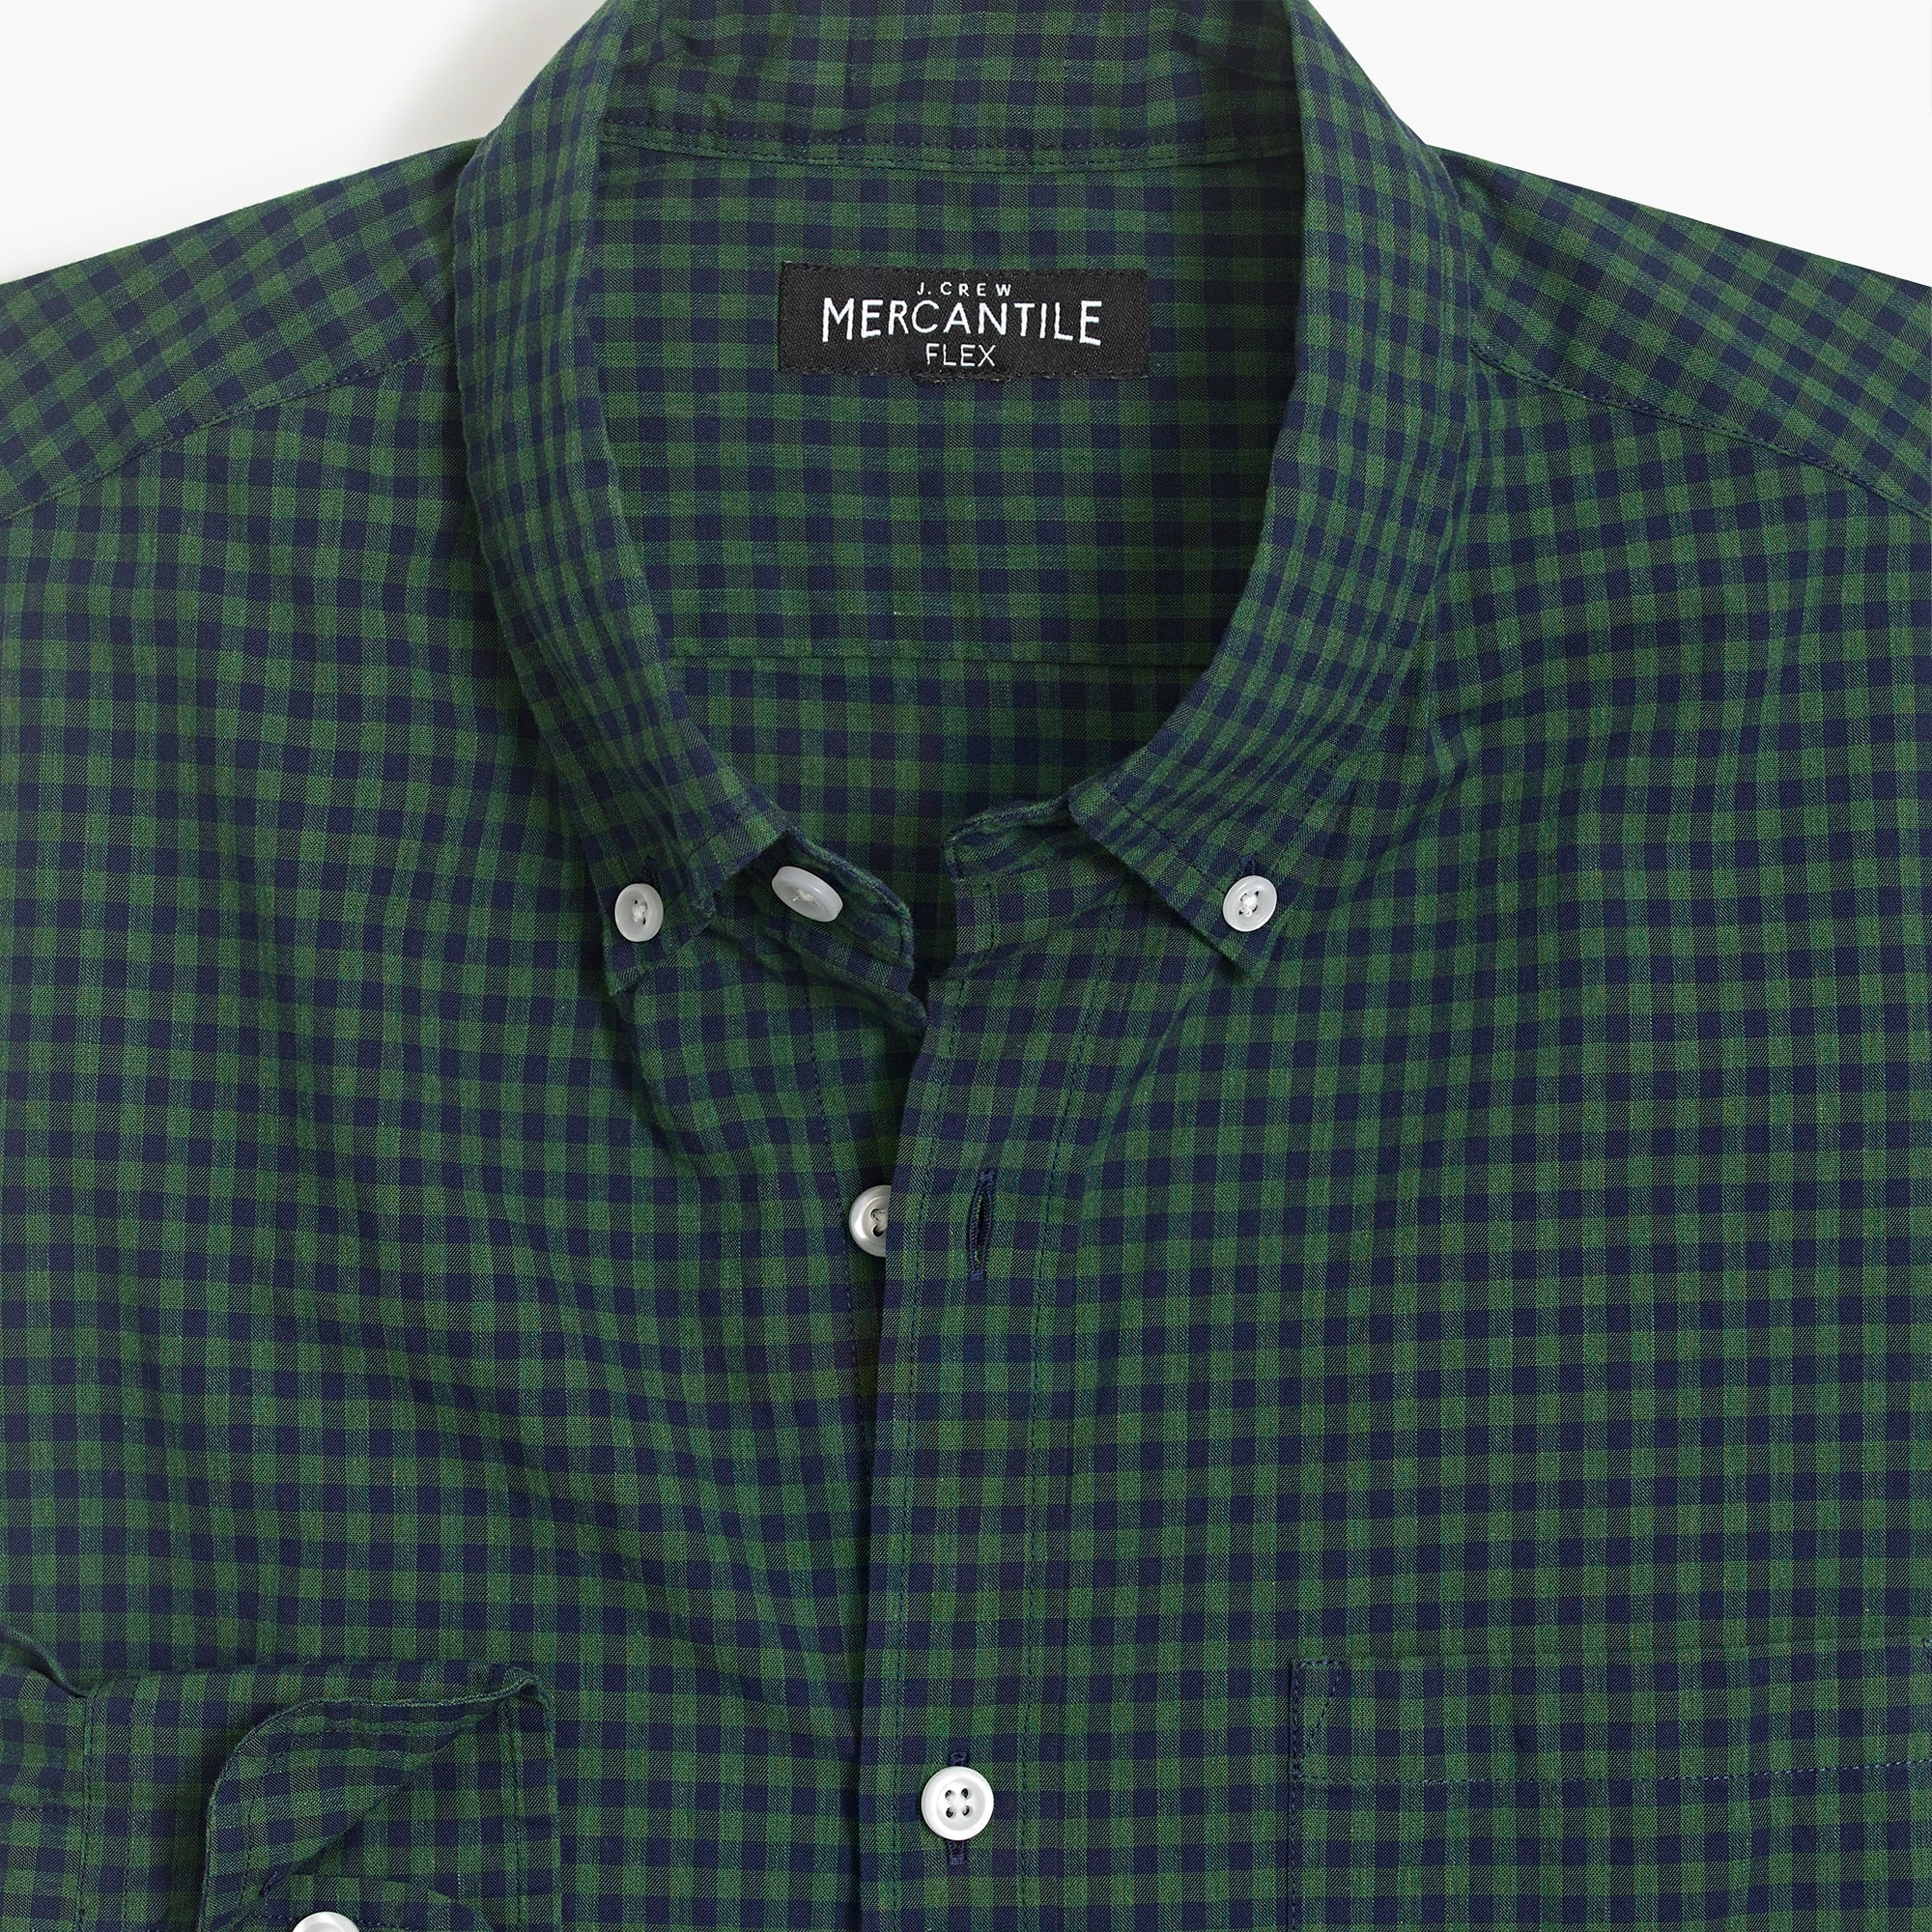 Image 3 for Slim flex heather washed shirt in gingham